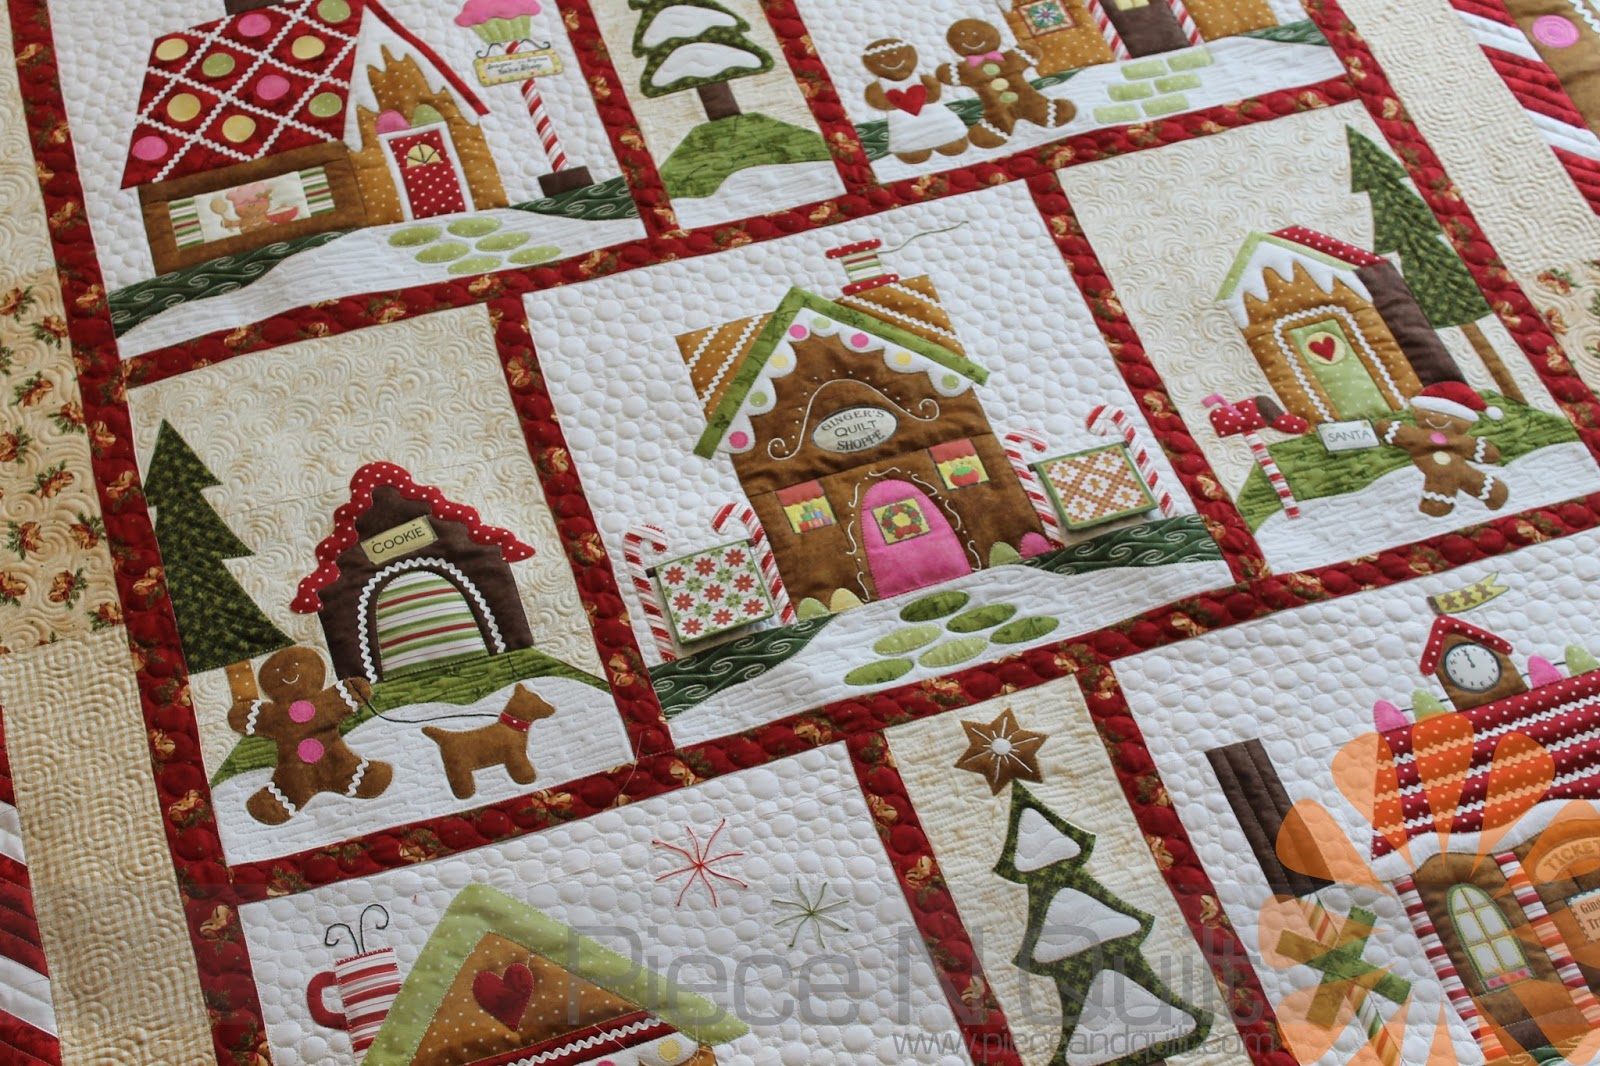 Piece n quilt gingerbread village quilt custom machine quilting by natalia bonner - Quilt rits ...